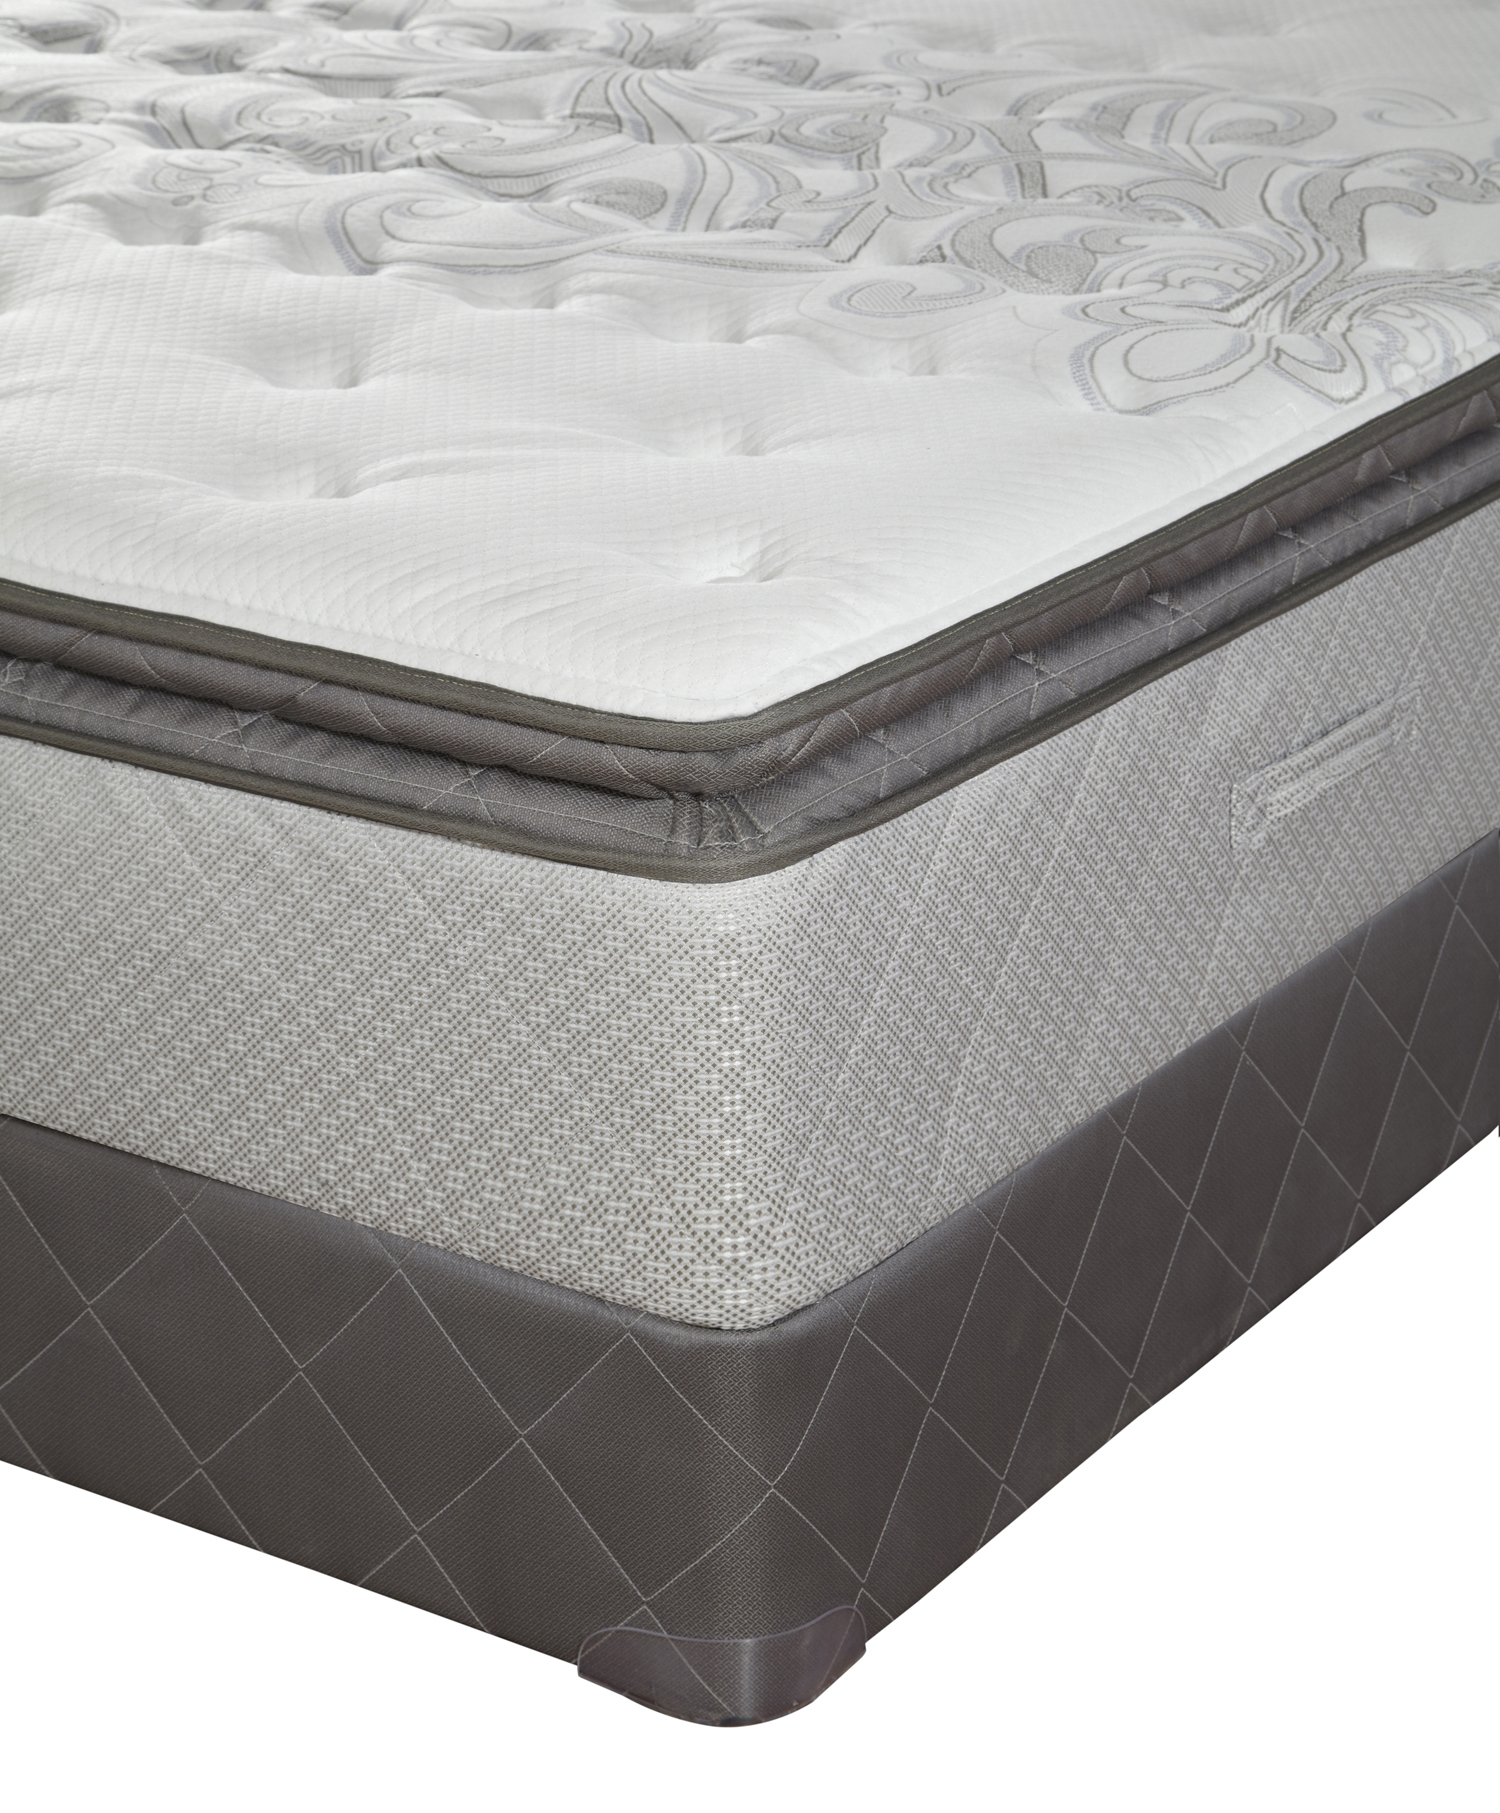 Mattress For LESS image 2